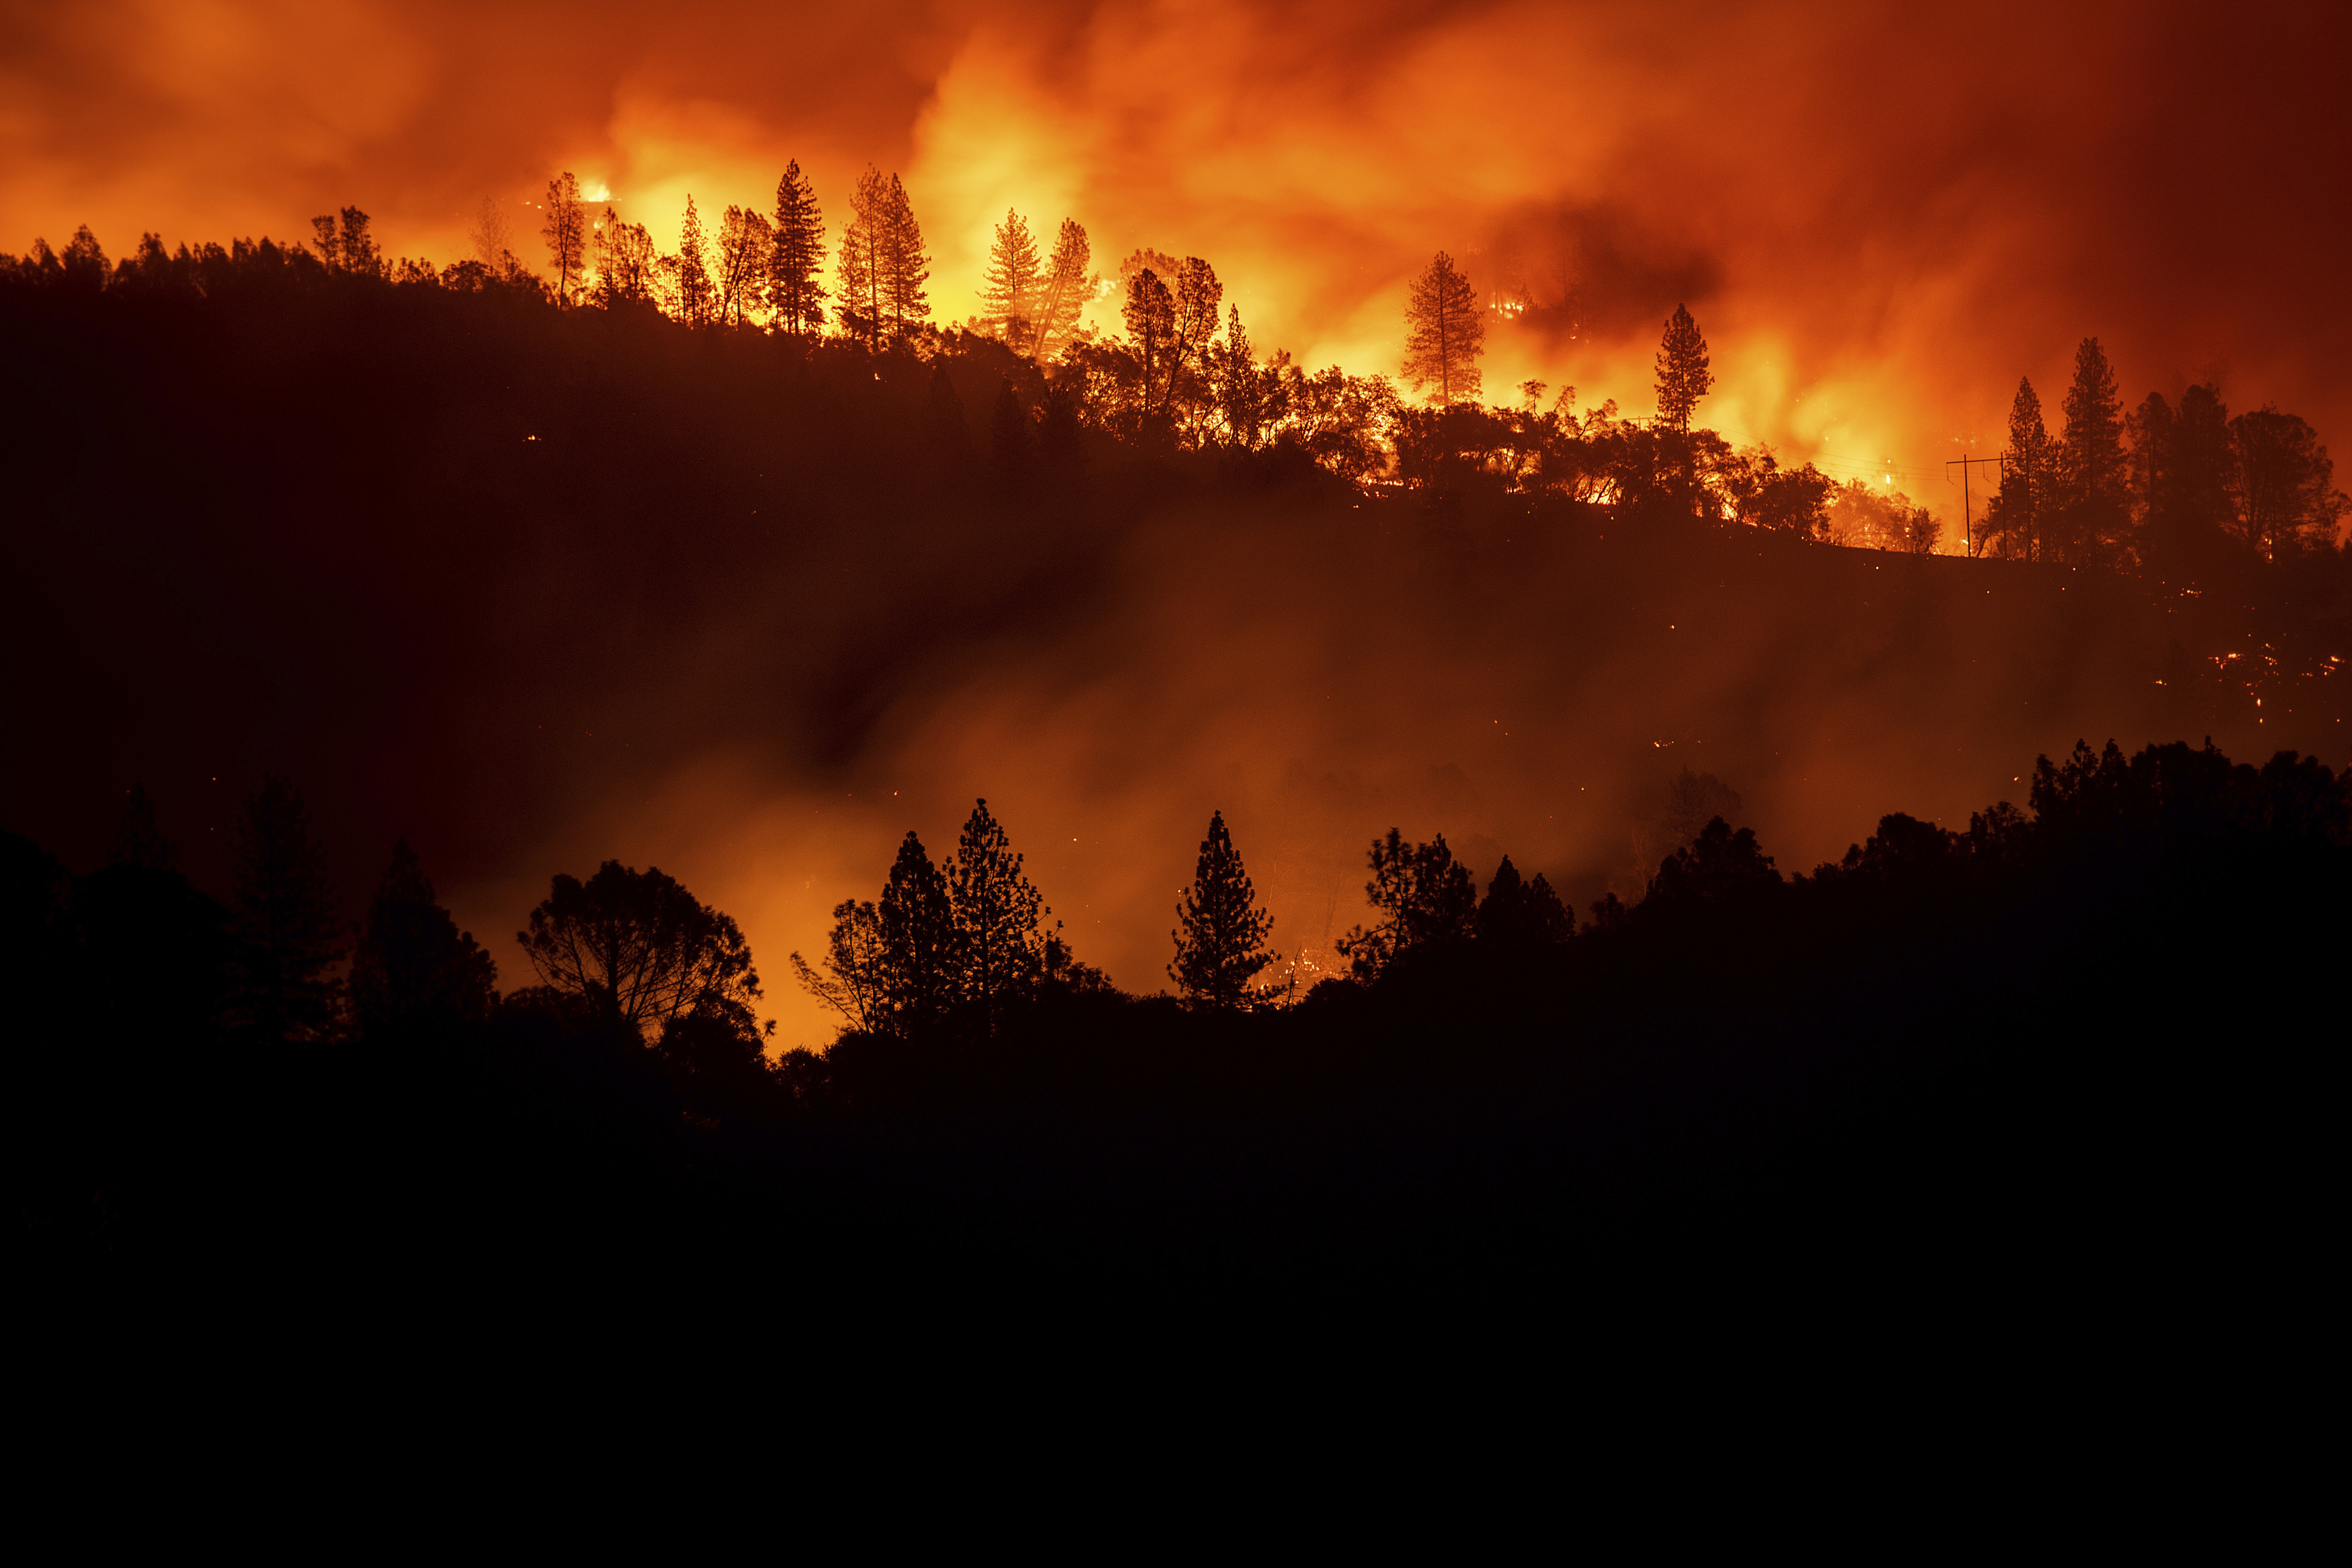 Wildfire season lessened as Trump administration mobilizes to reduce risk